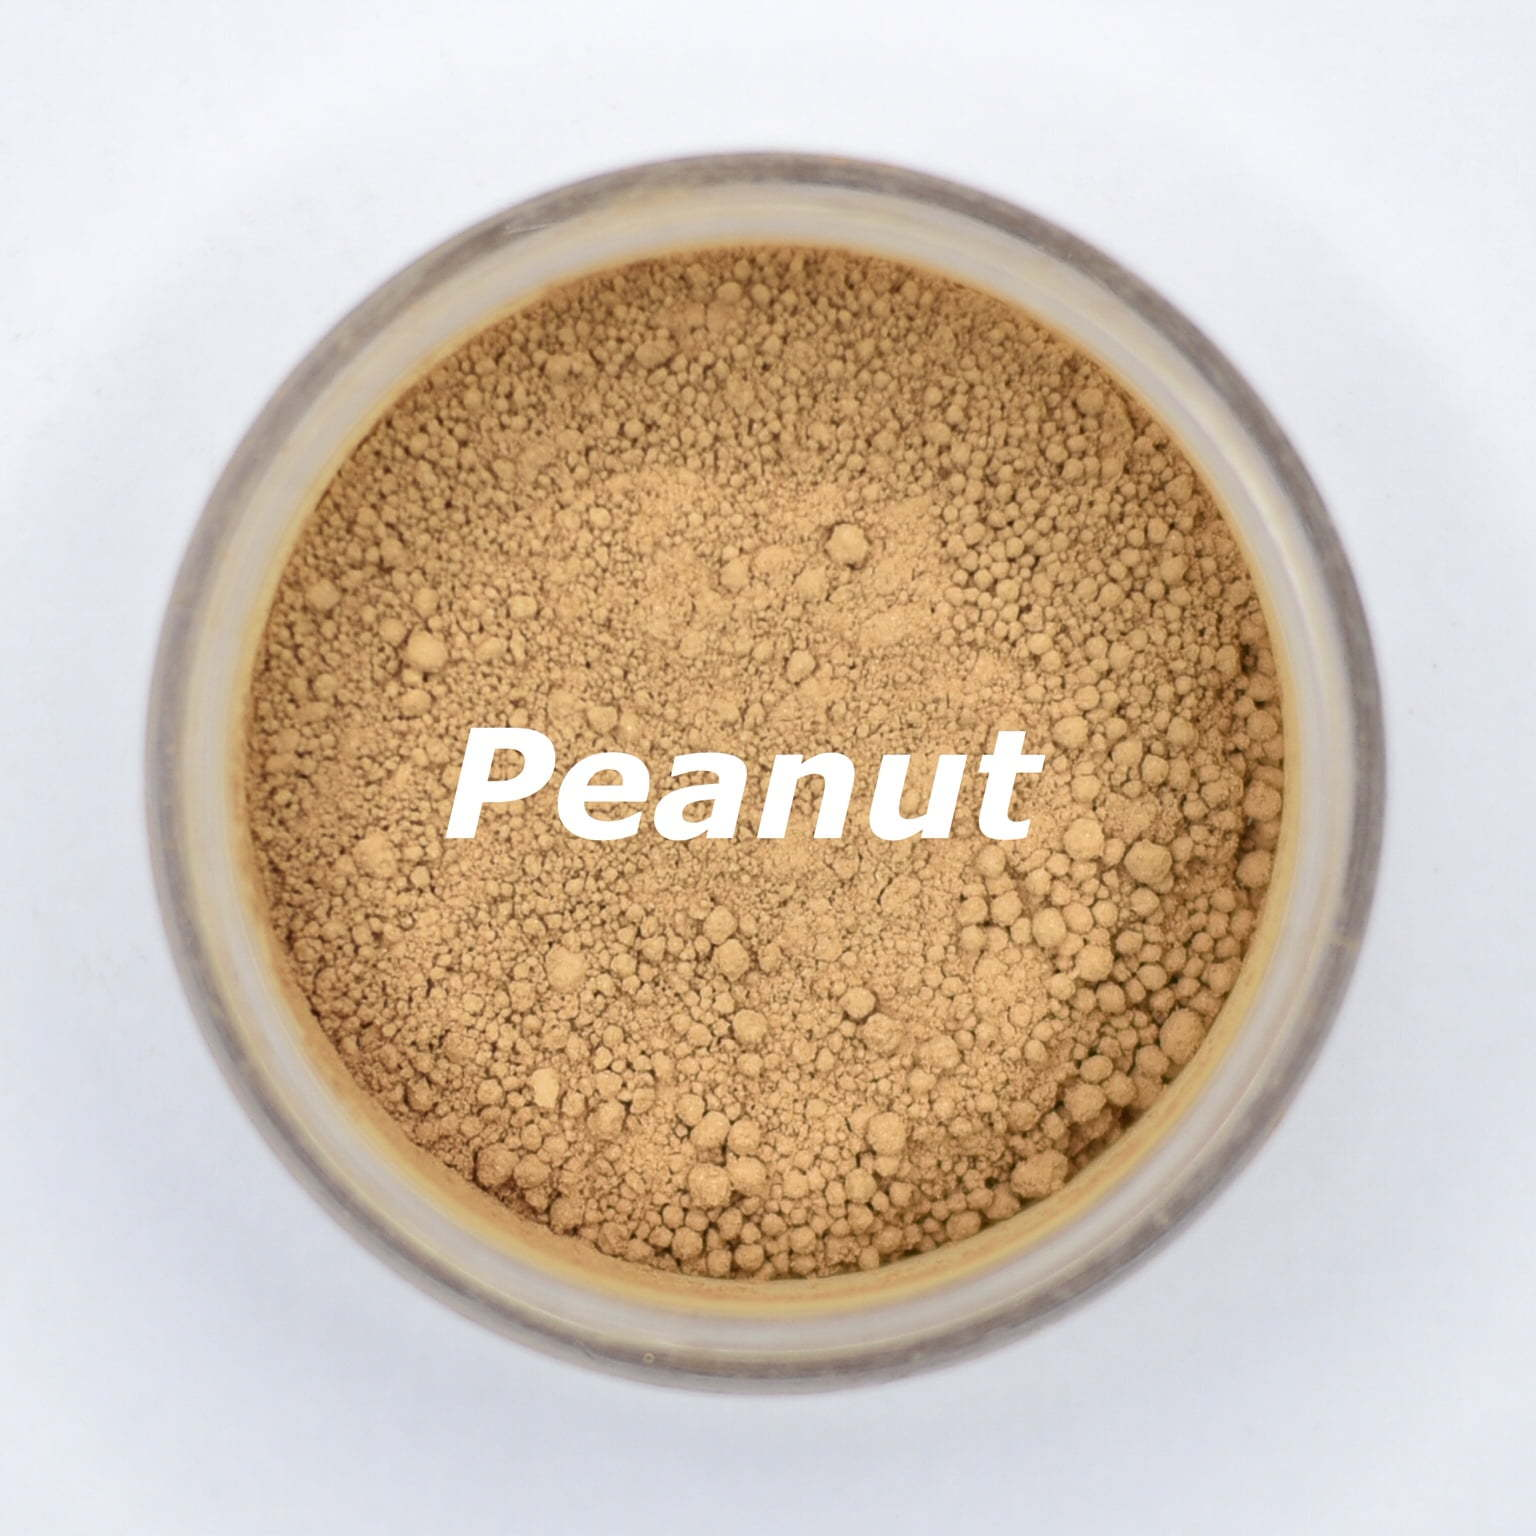 peanut foundation shade